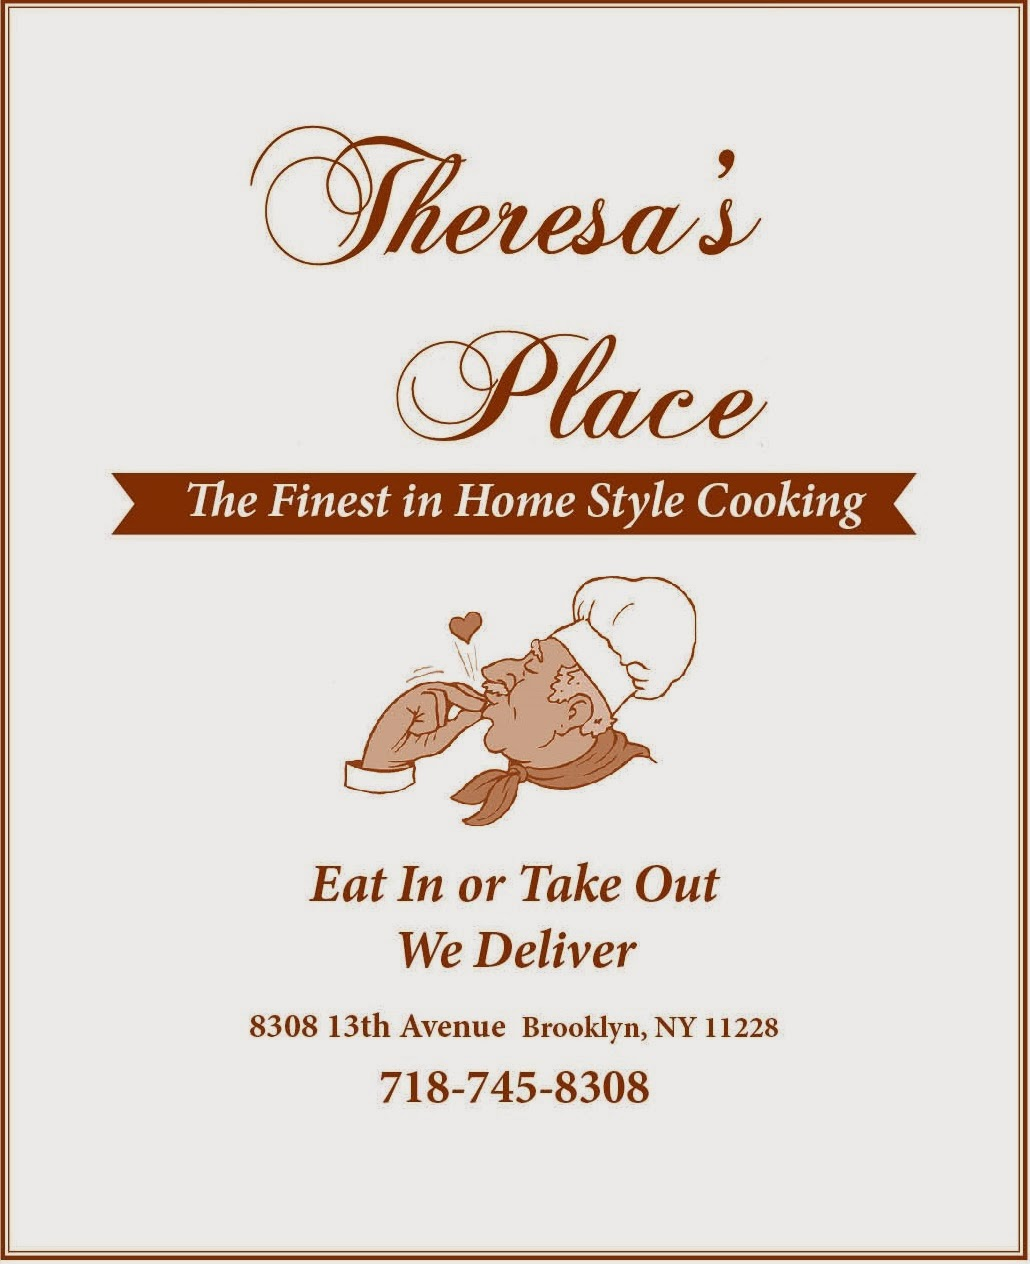 Theresa's Place